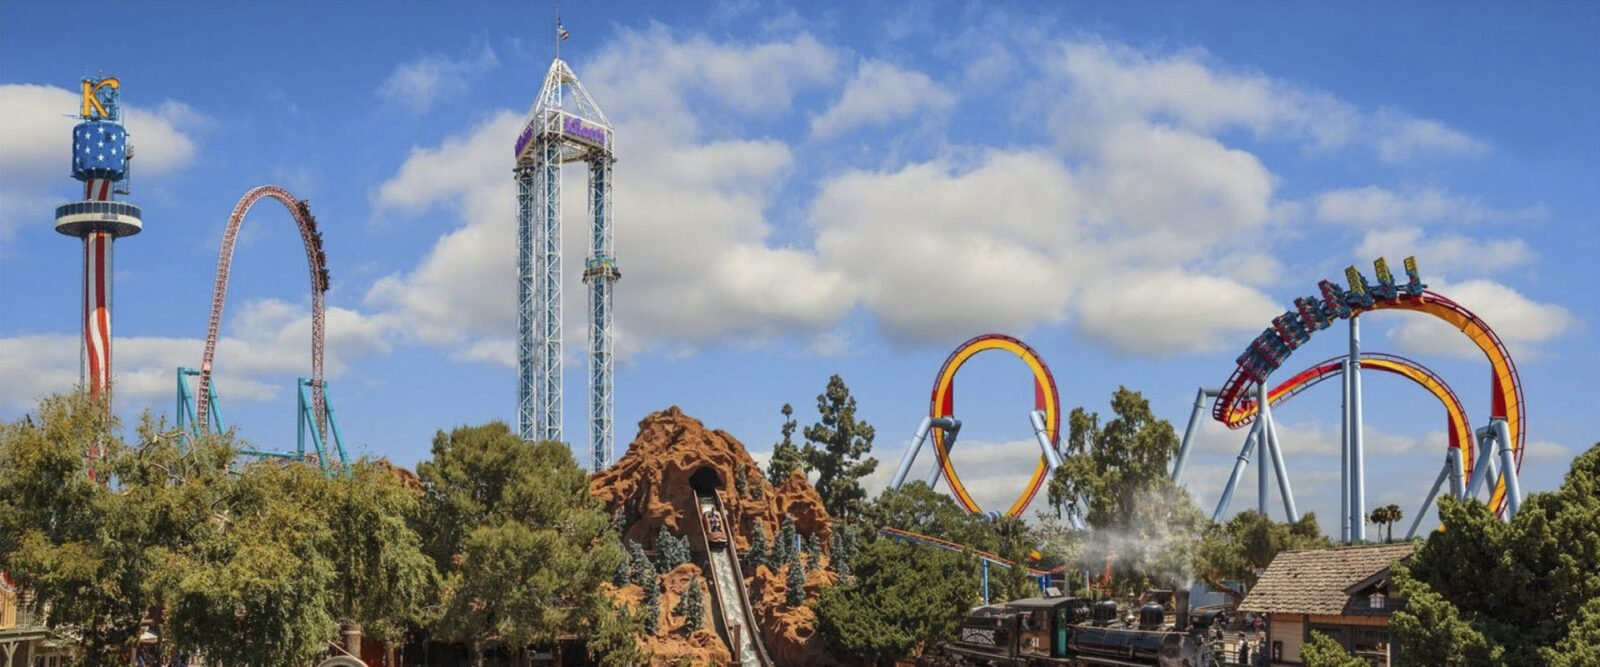 Knott's Berry Farm Theme Park is a great place to spend time with friend and family.